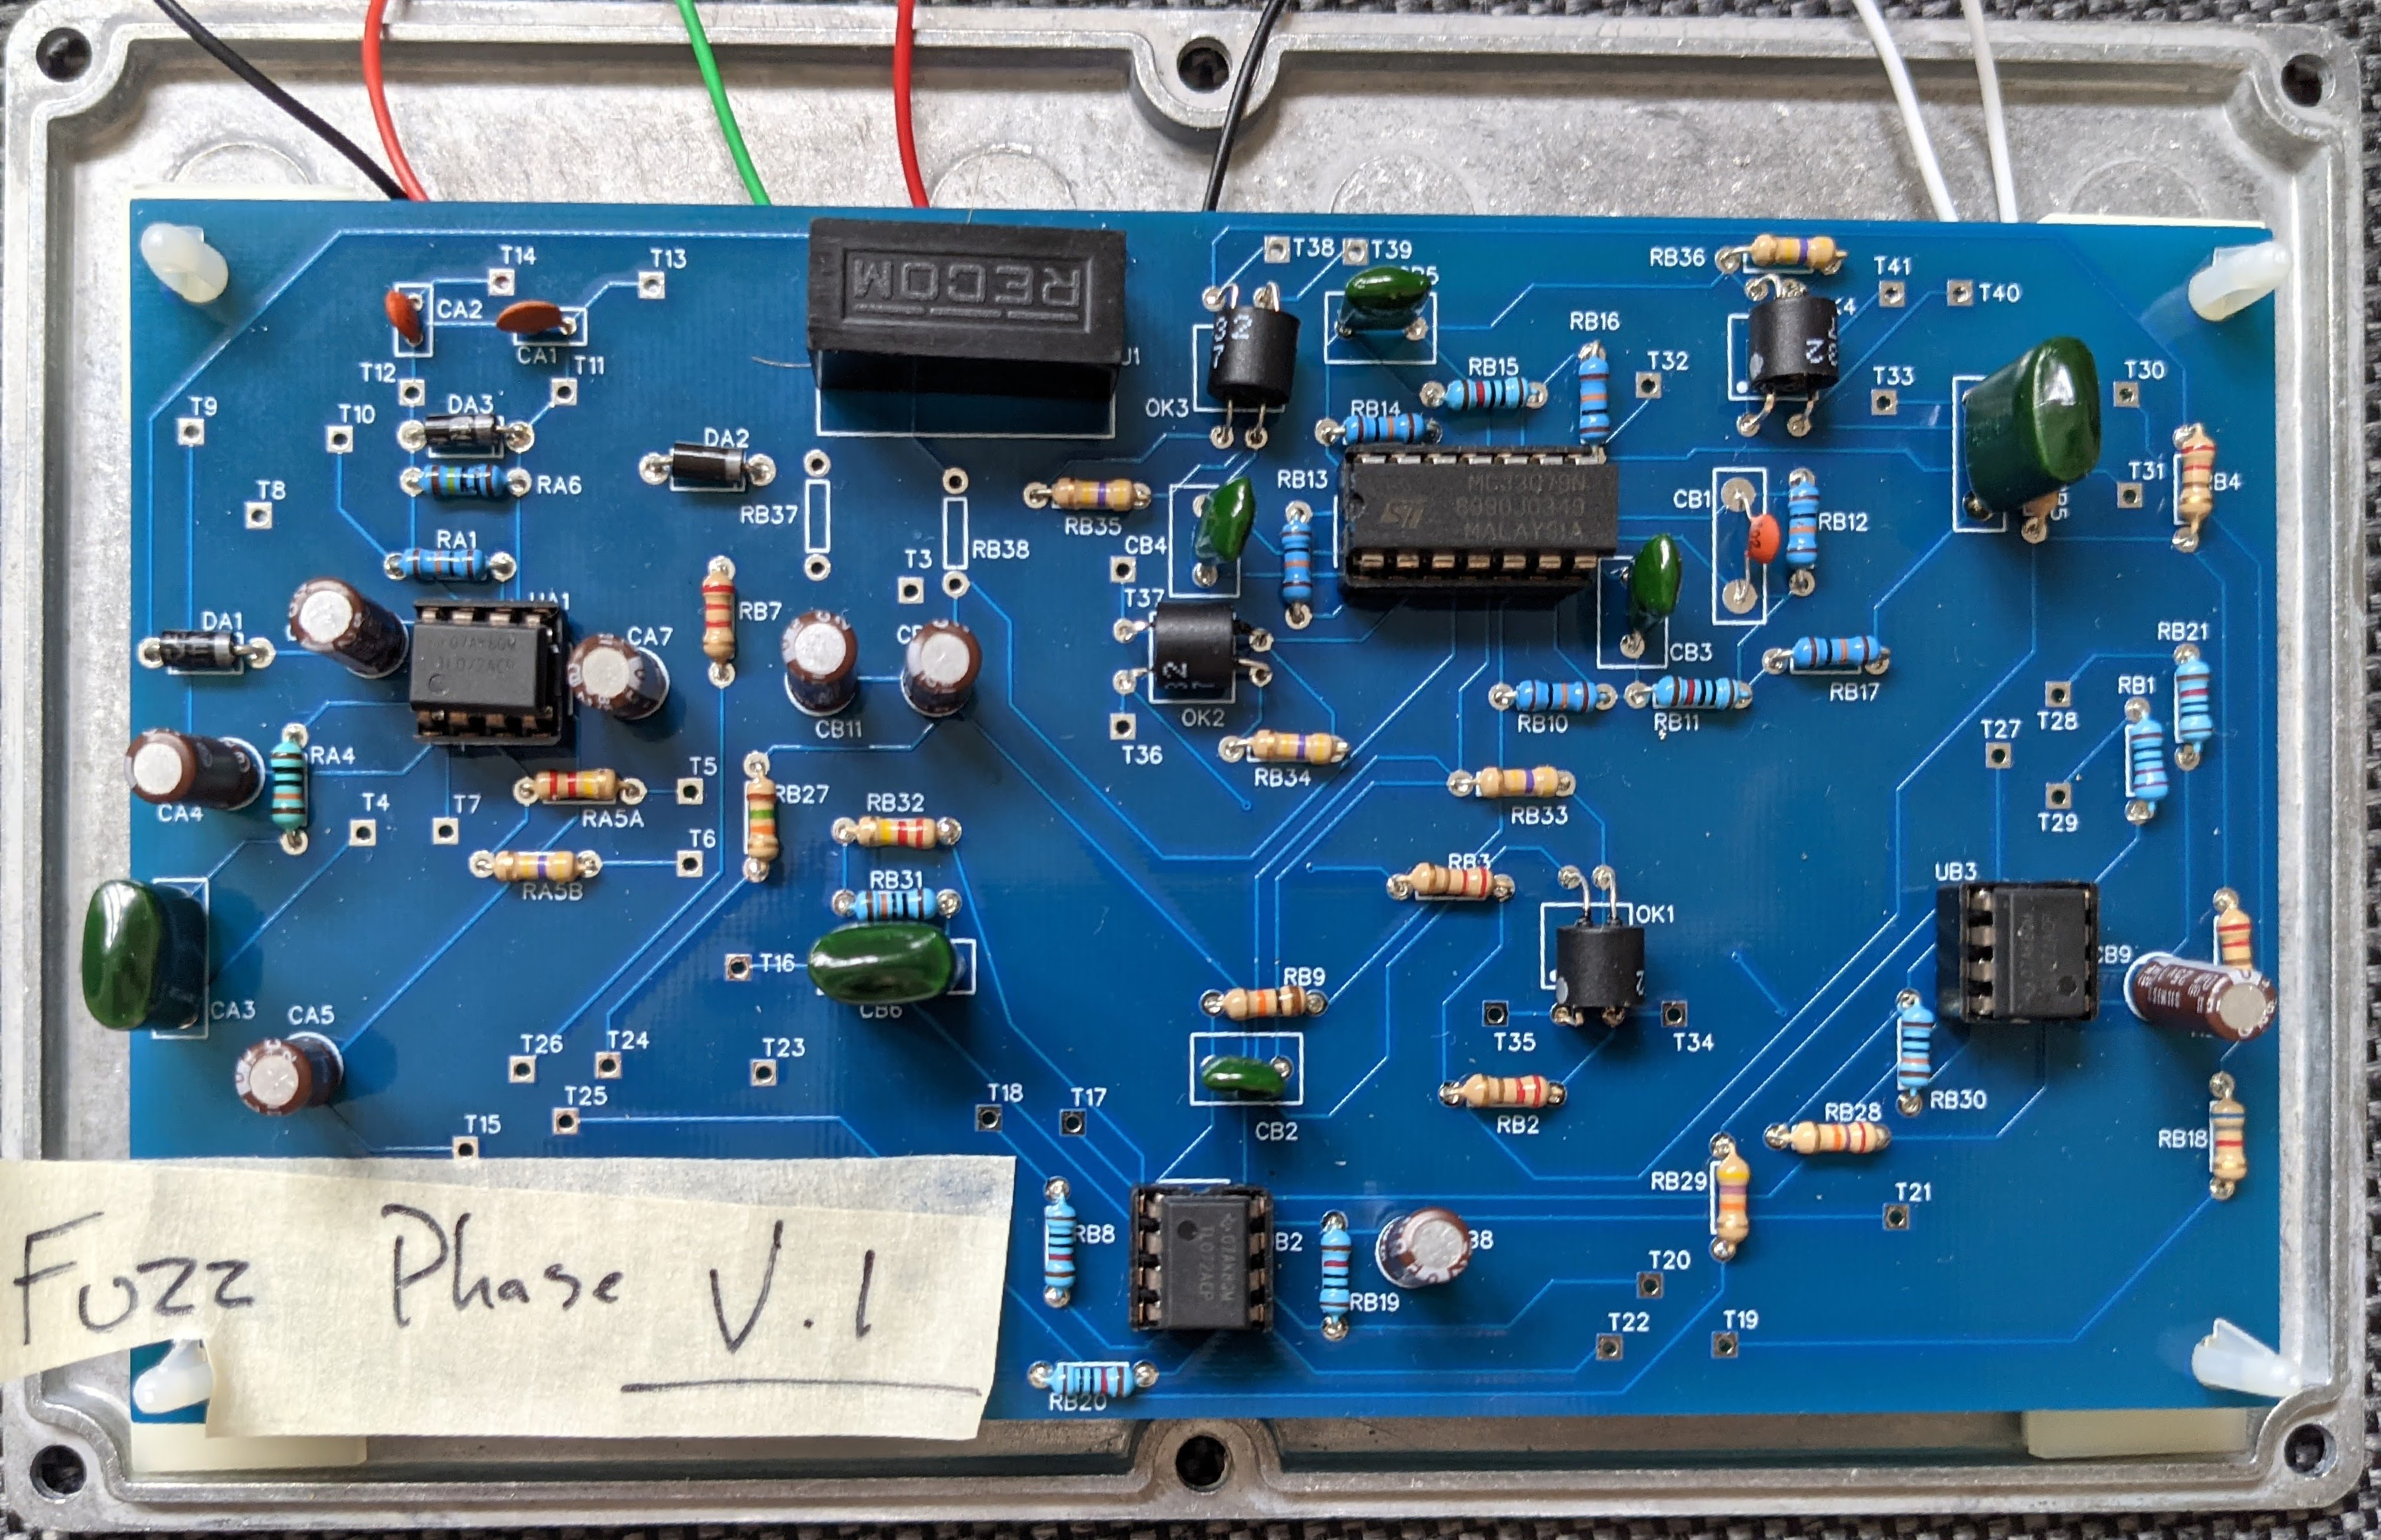 fuzz phase guitar pedal built by dBs technician Callum Godfroy